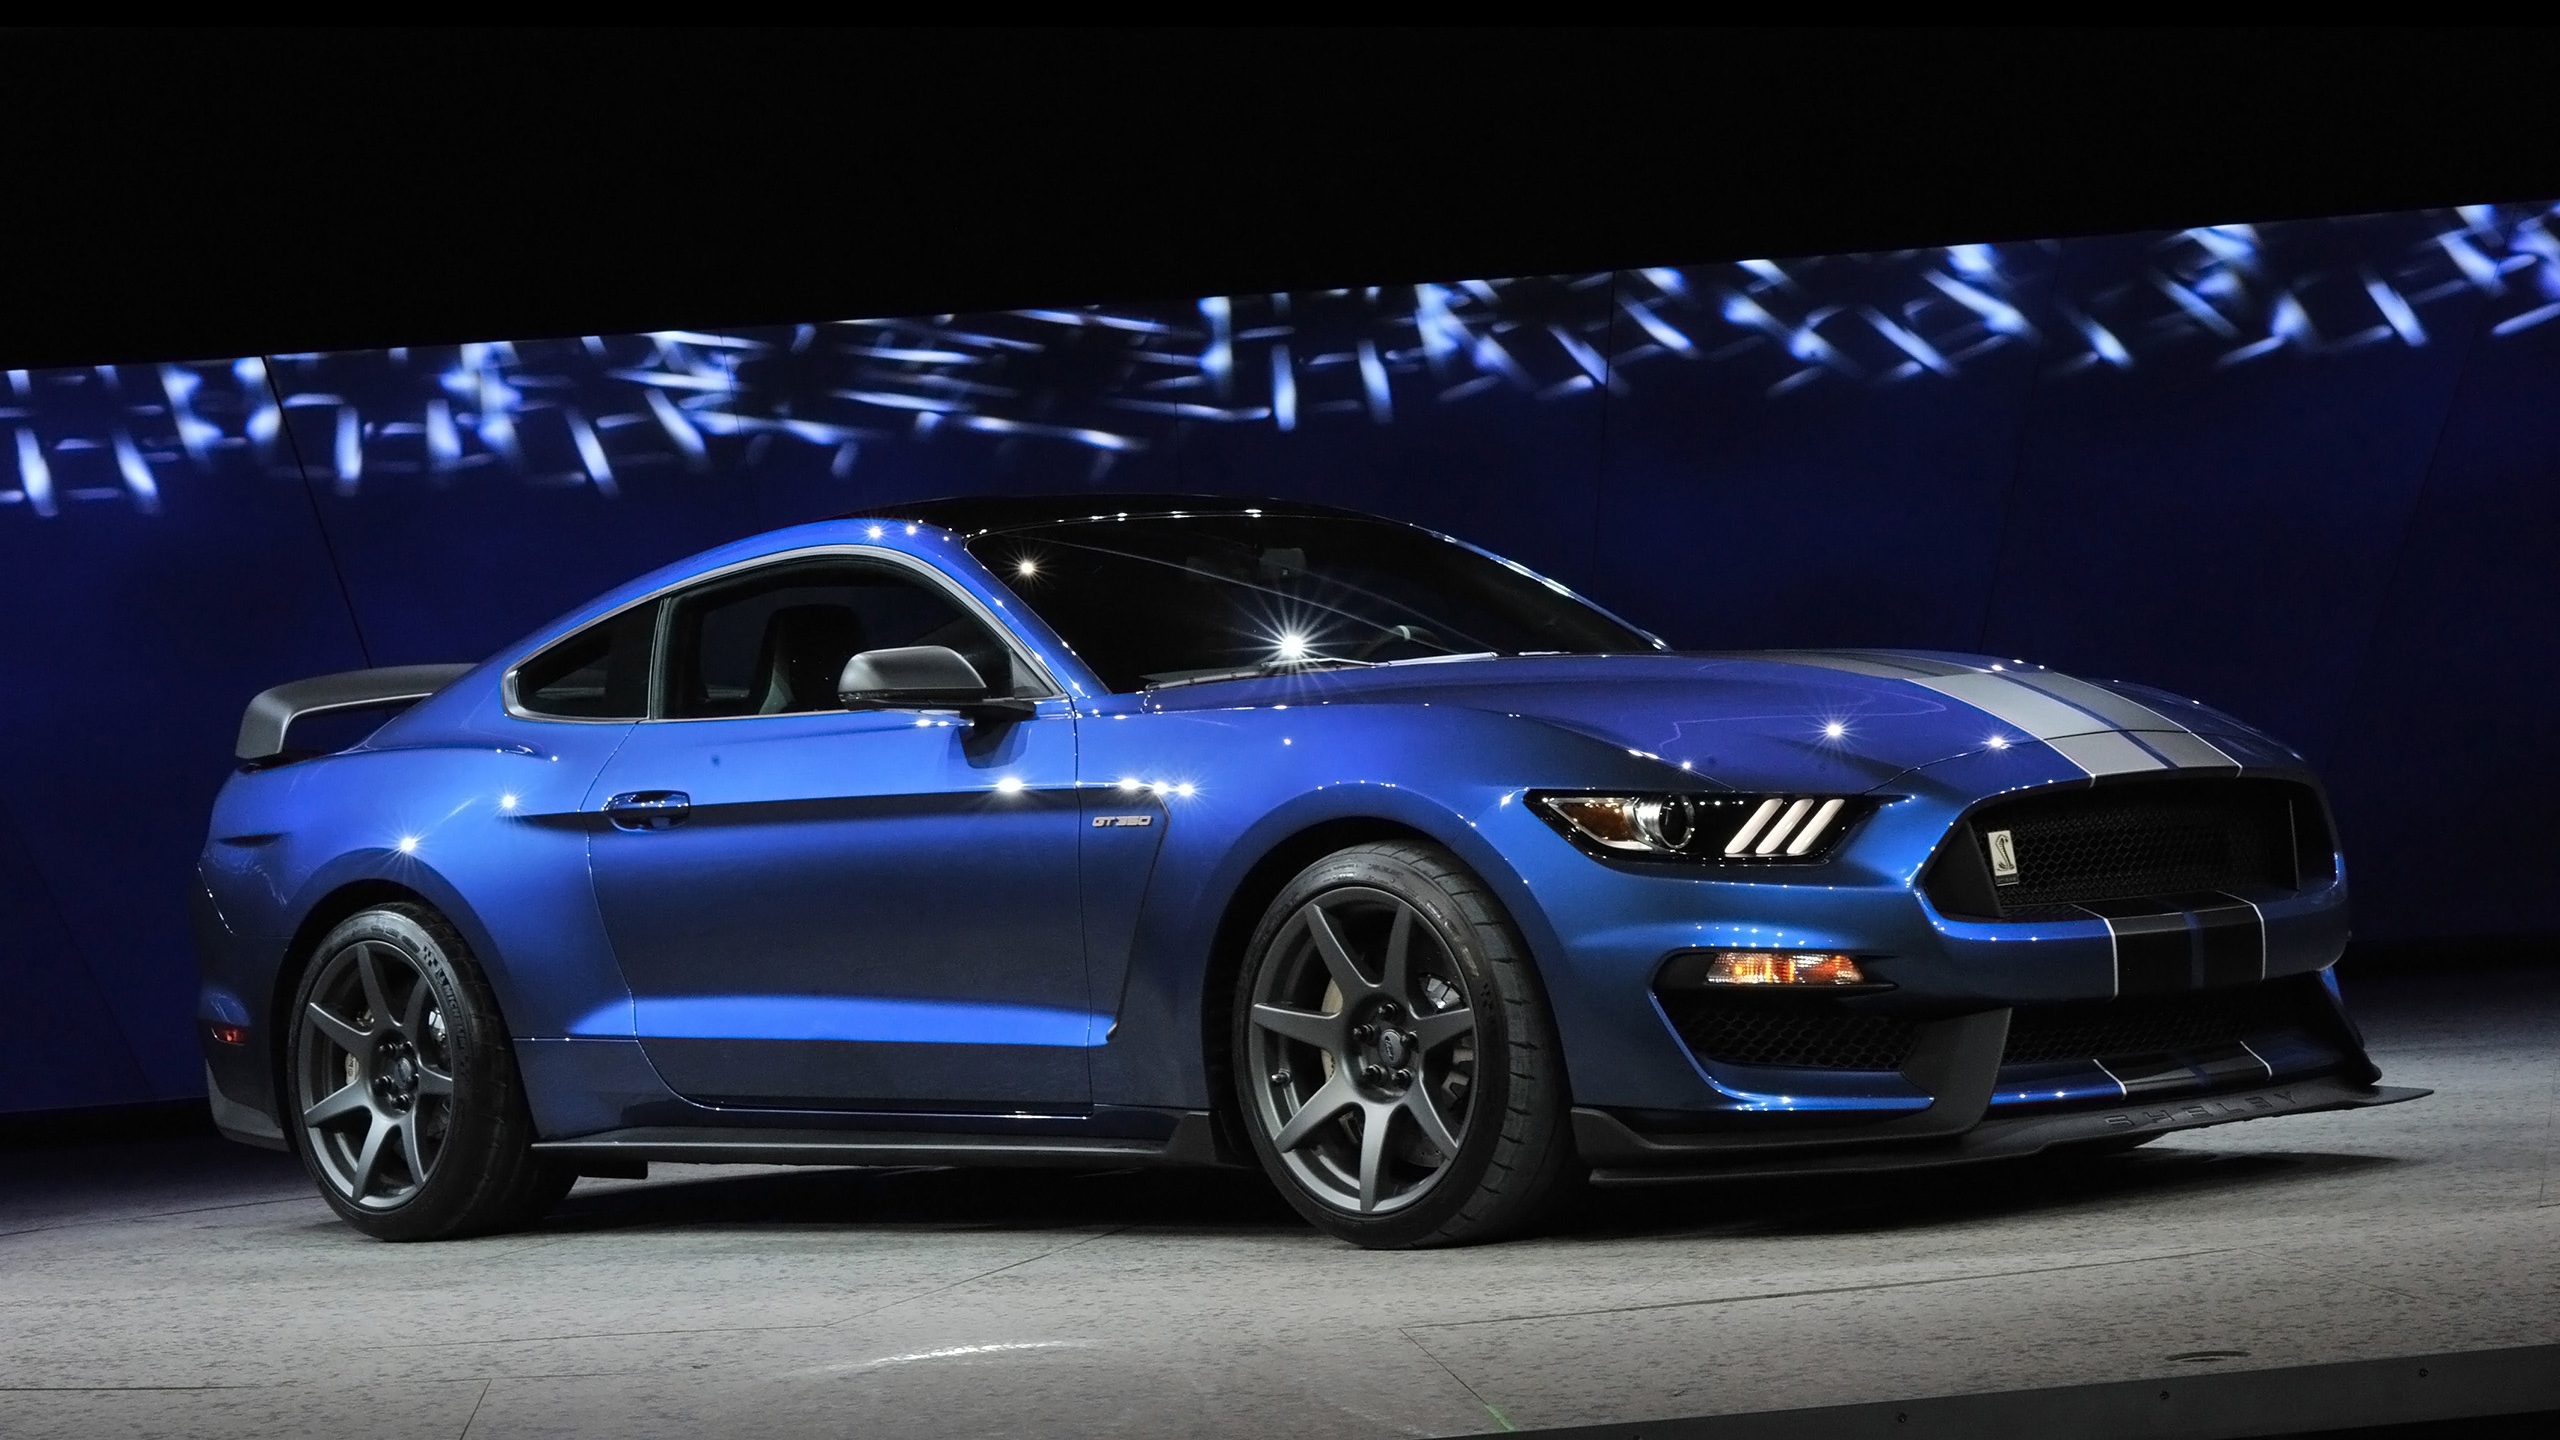 2016 ford shelby gt350r mustang 2 wallpaper | hd car wallpapers